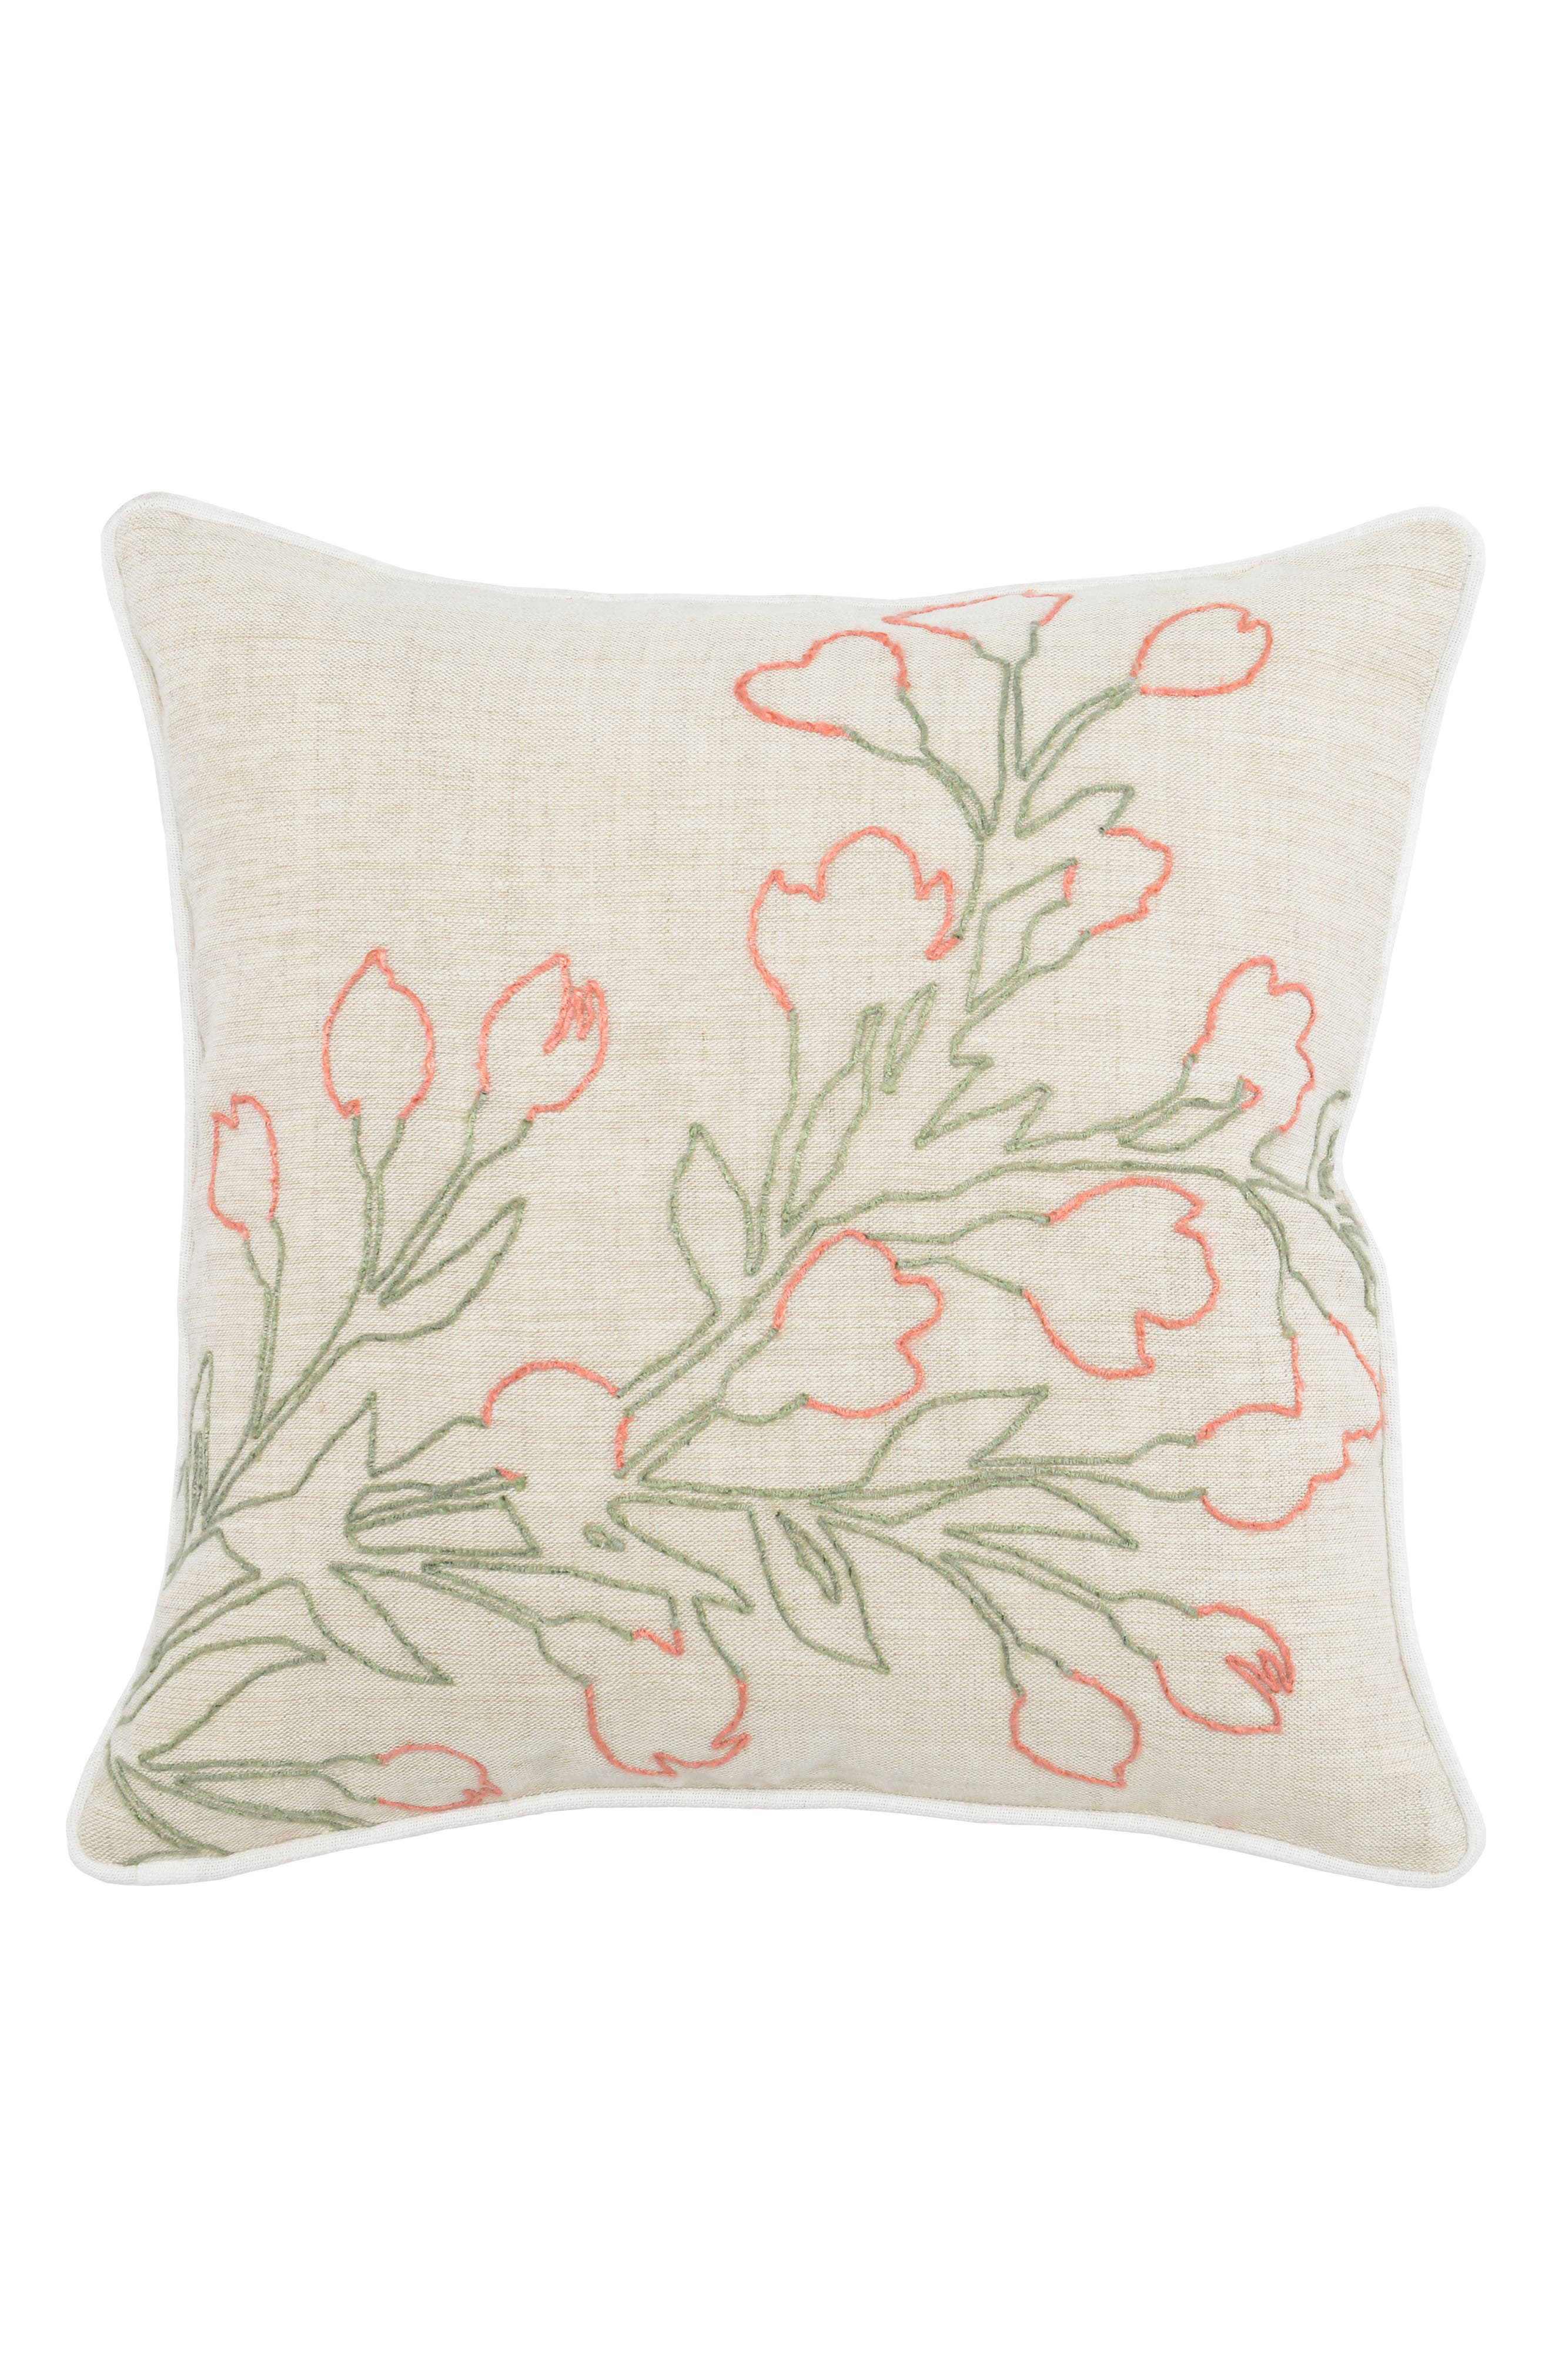 VILLA HOME COLLECTION Emery Accent Pillow, Main, color, IVORY/ ROSE/ MINT